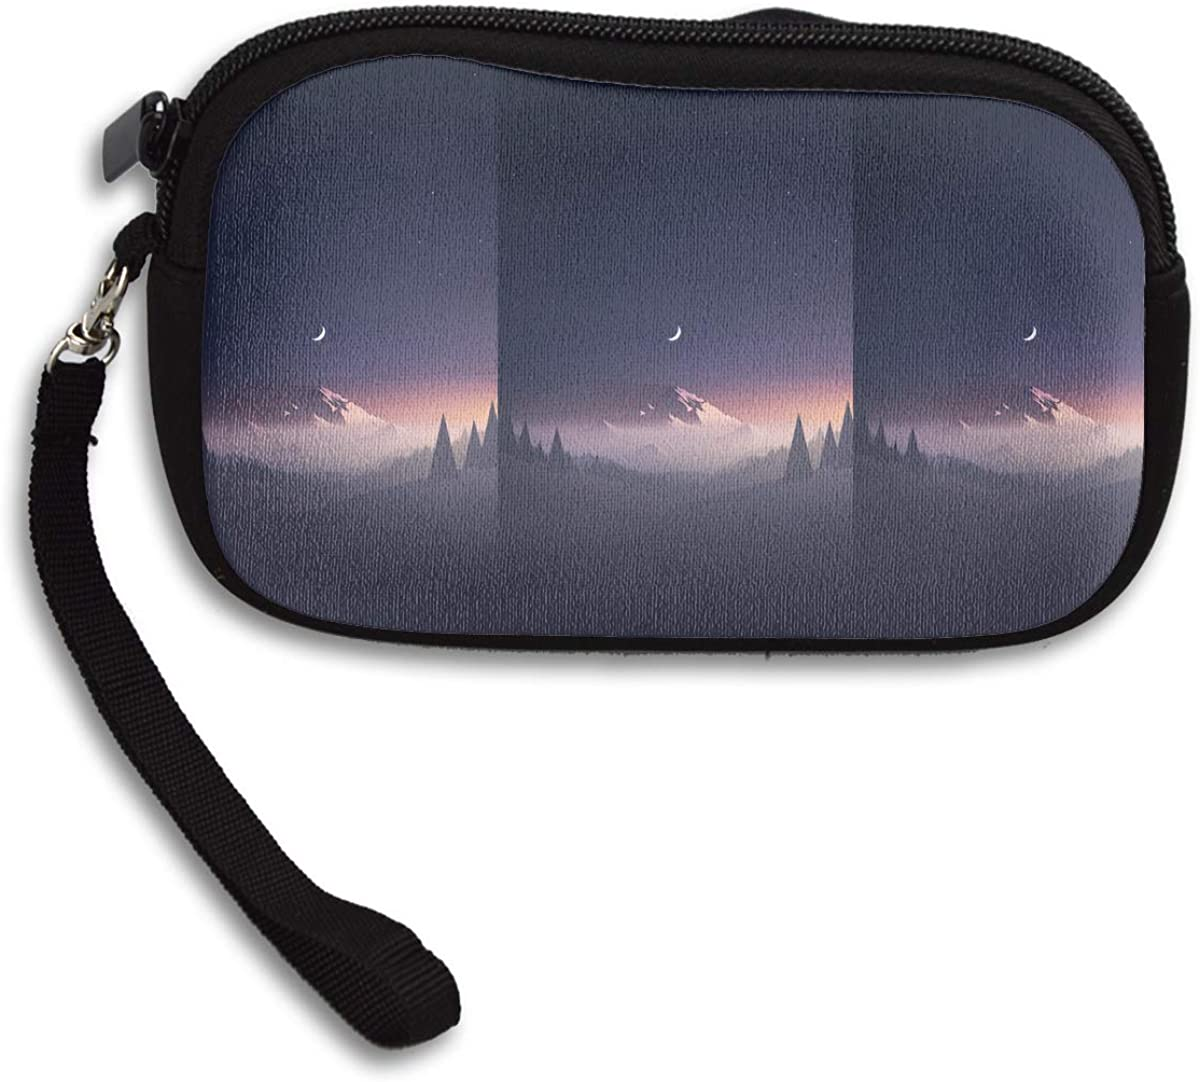 Digital Art Nature Mountains Portrait Display Moon Stars Night Mist Trees Forest Minimalism Hills Clear Sky Starry Night Deluxe Printing Small Purse Portable Receiving Bag